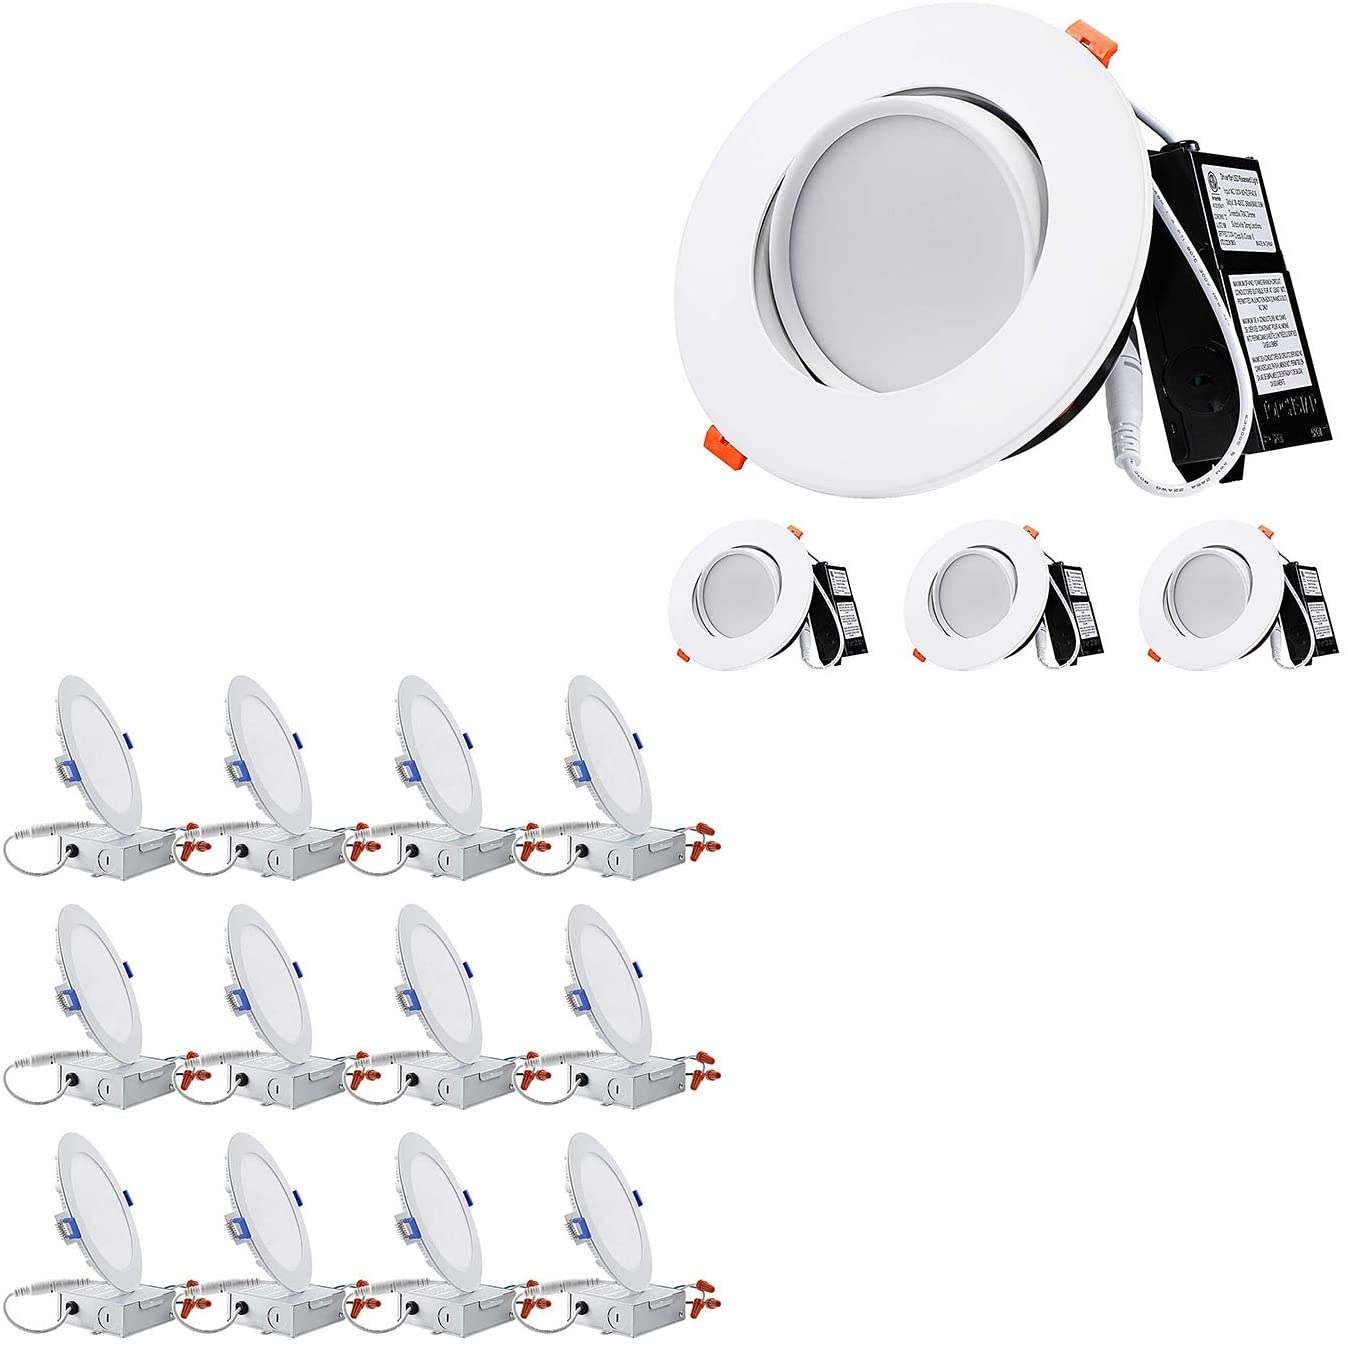 TORCHSTAR Slim LED Downlight Bundle Gimbal LED Recessed Light, 12-Pack 12W 6 Inch Dimmable Ultra Thin LED Downlight, 2700K Soft White & 4-Pack 6 Inch 13.5W Dimmable CRI 90+ Gimbal LED Recessed Light